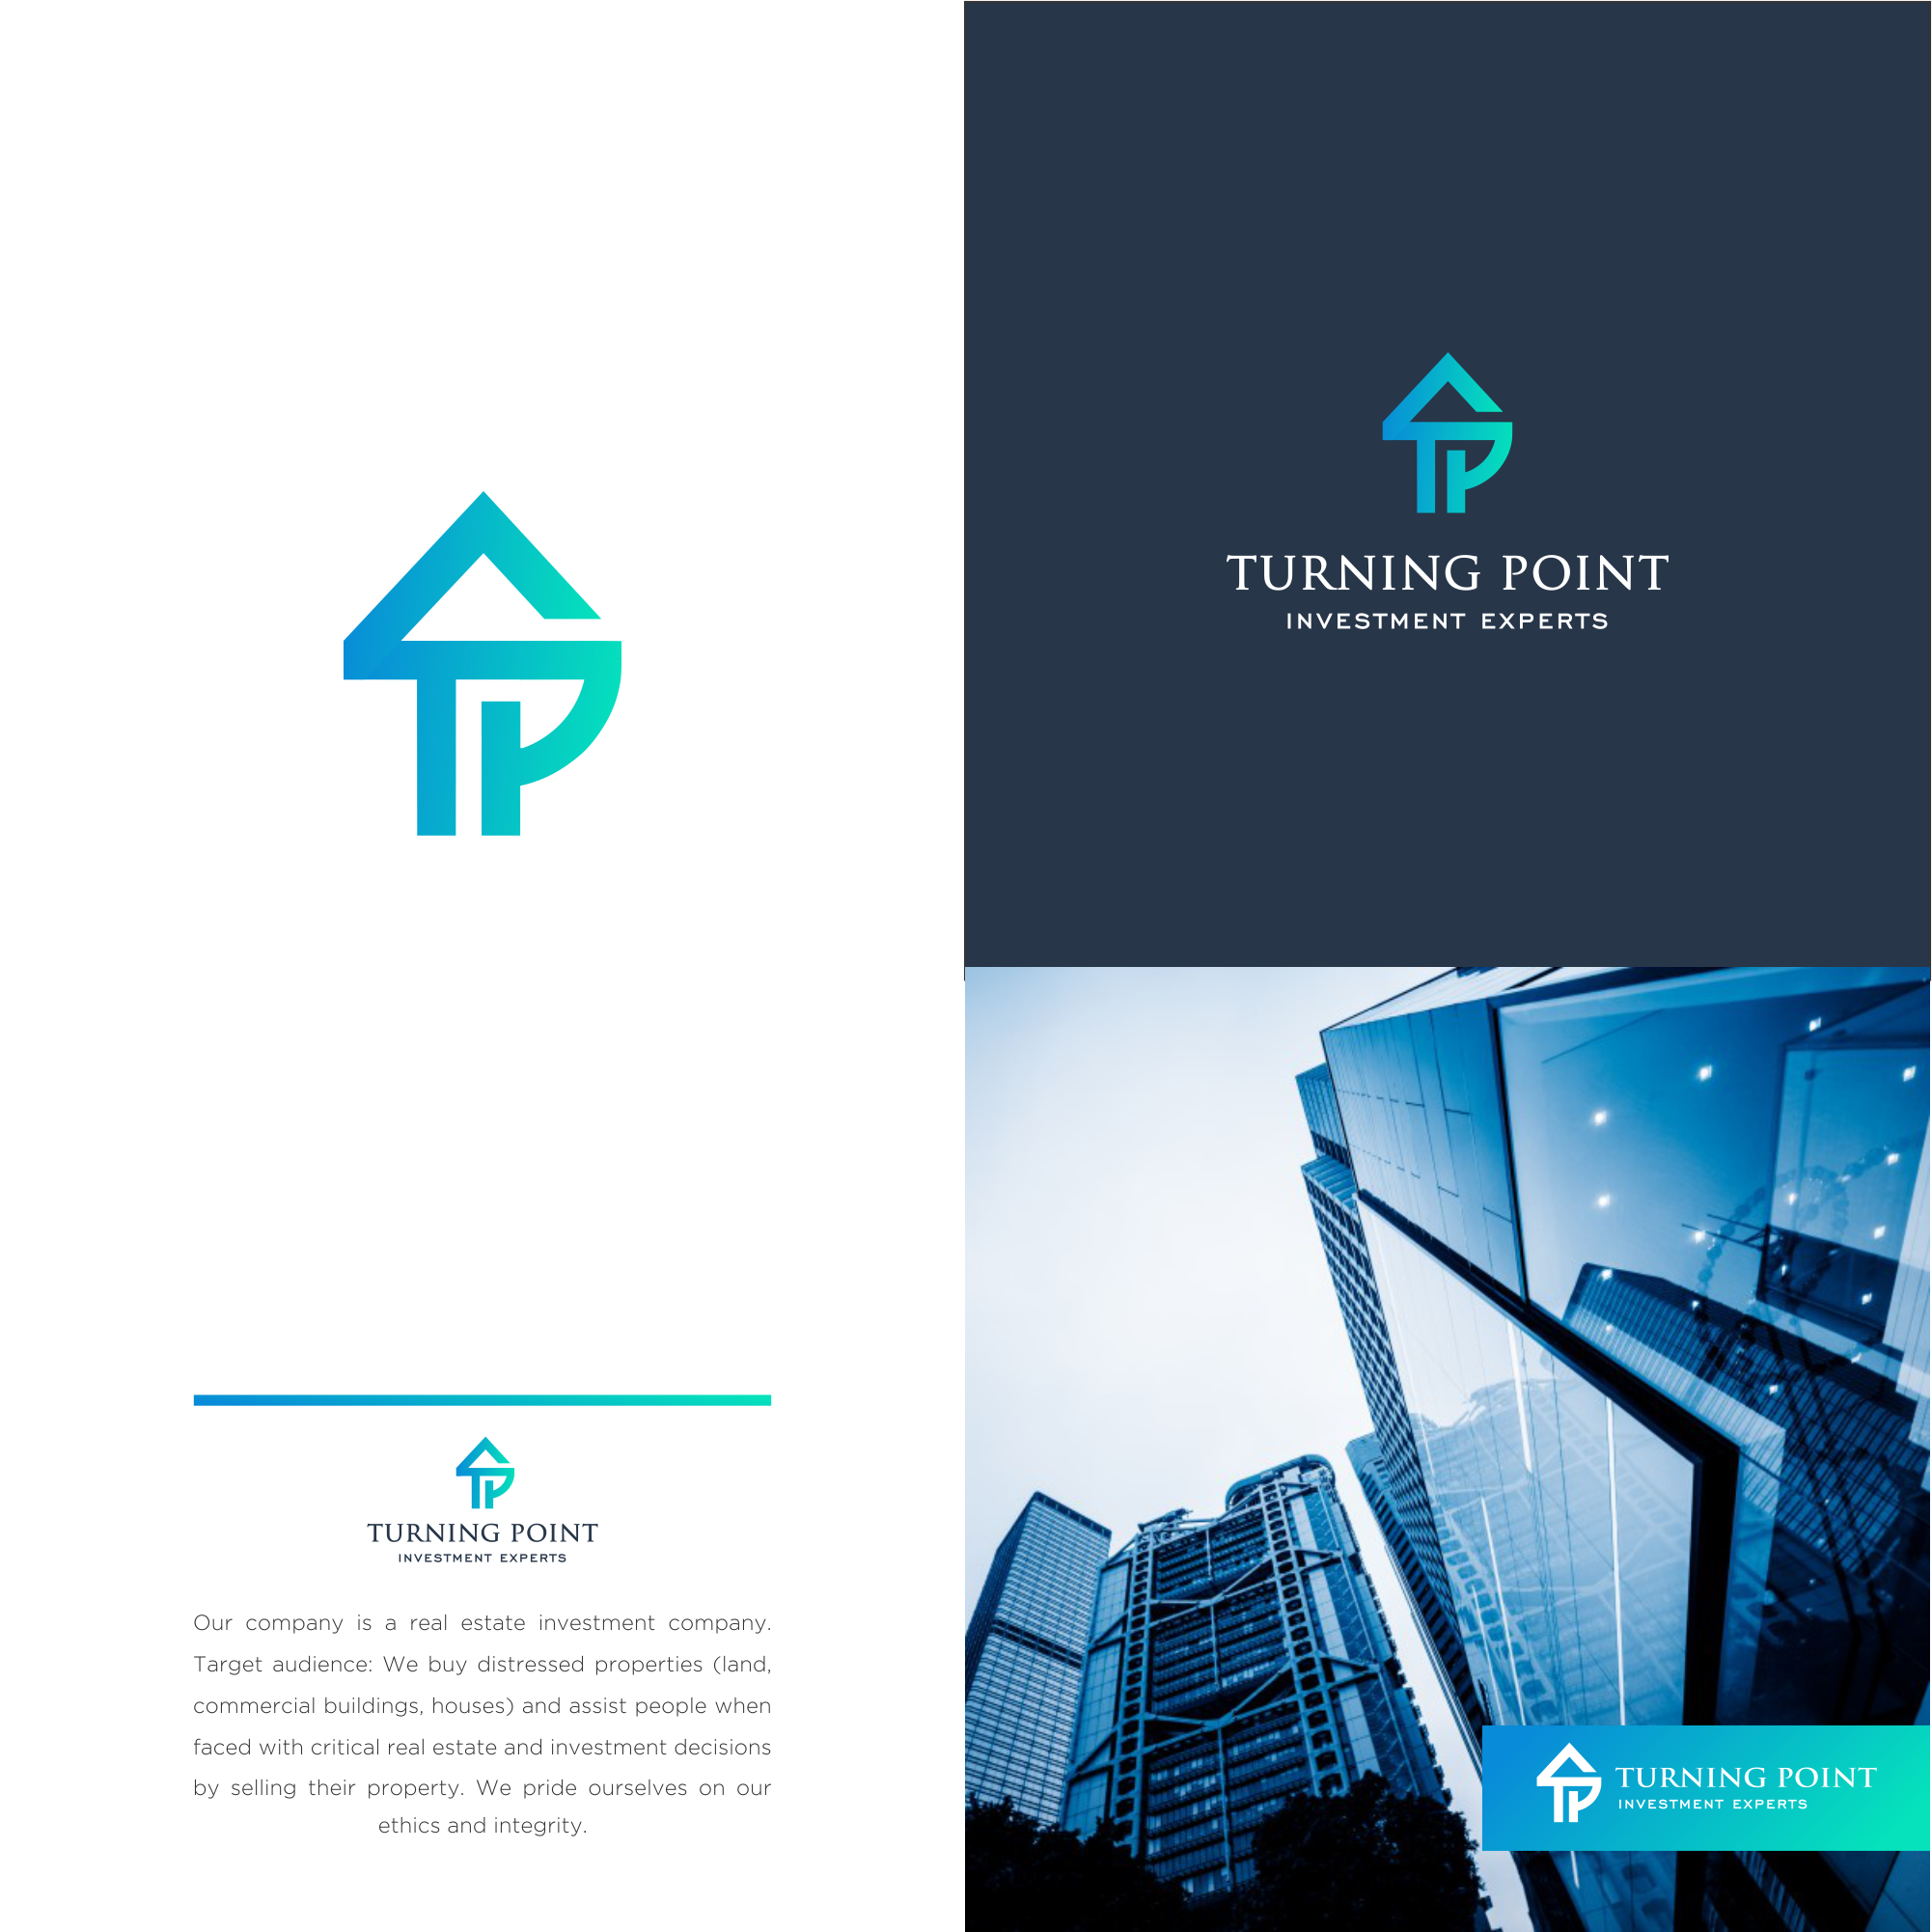 Turning Point Investment Experts.